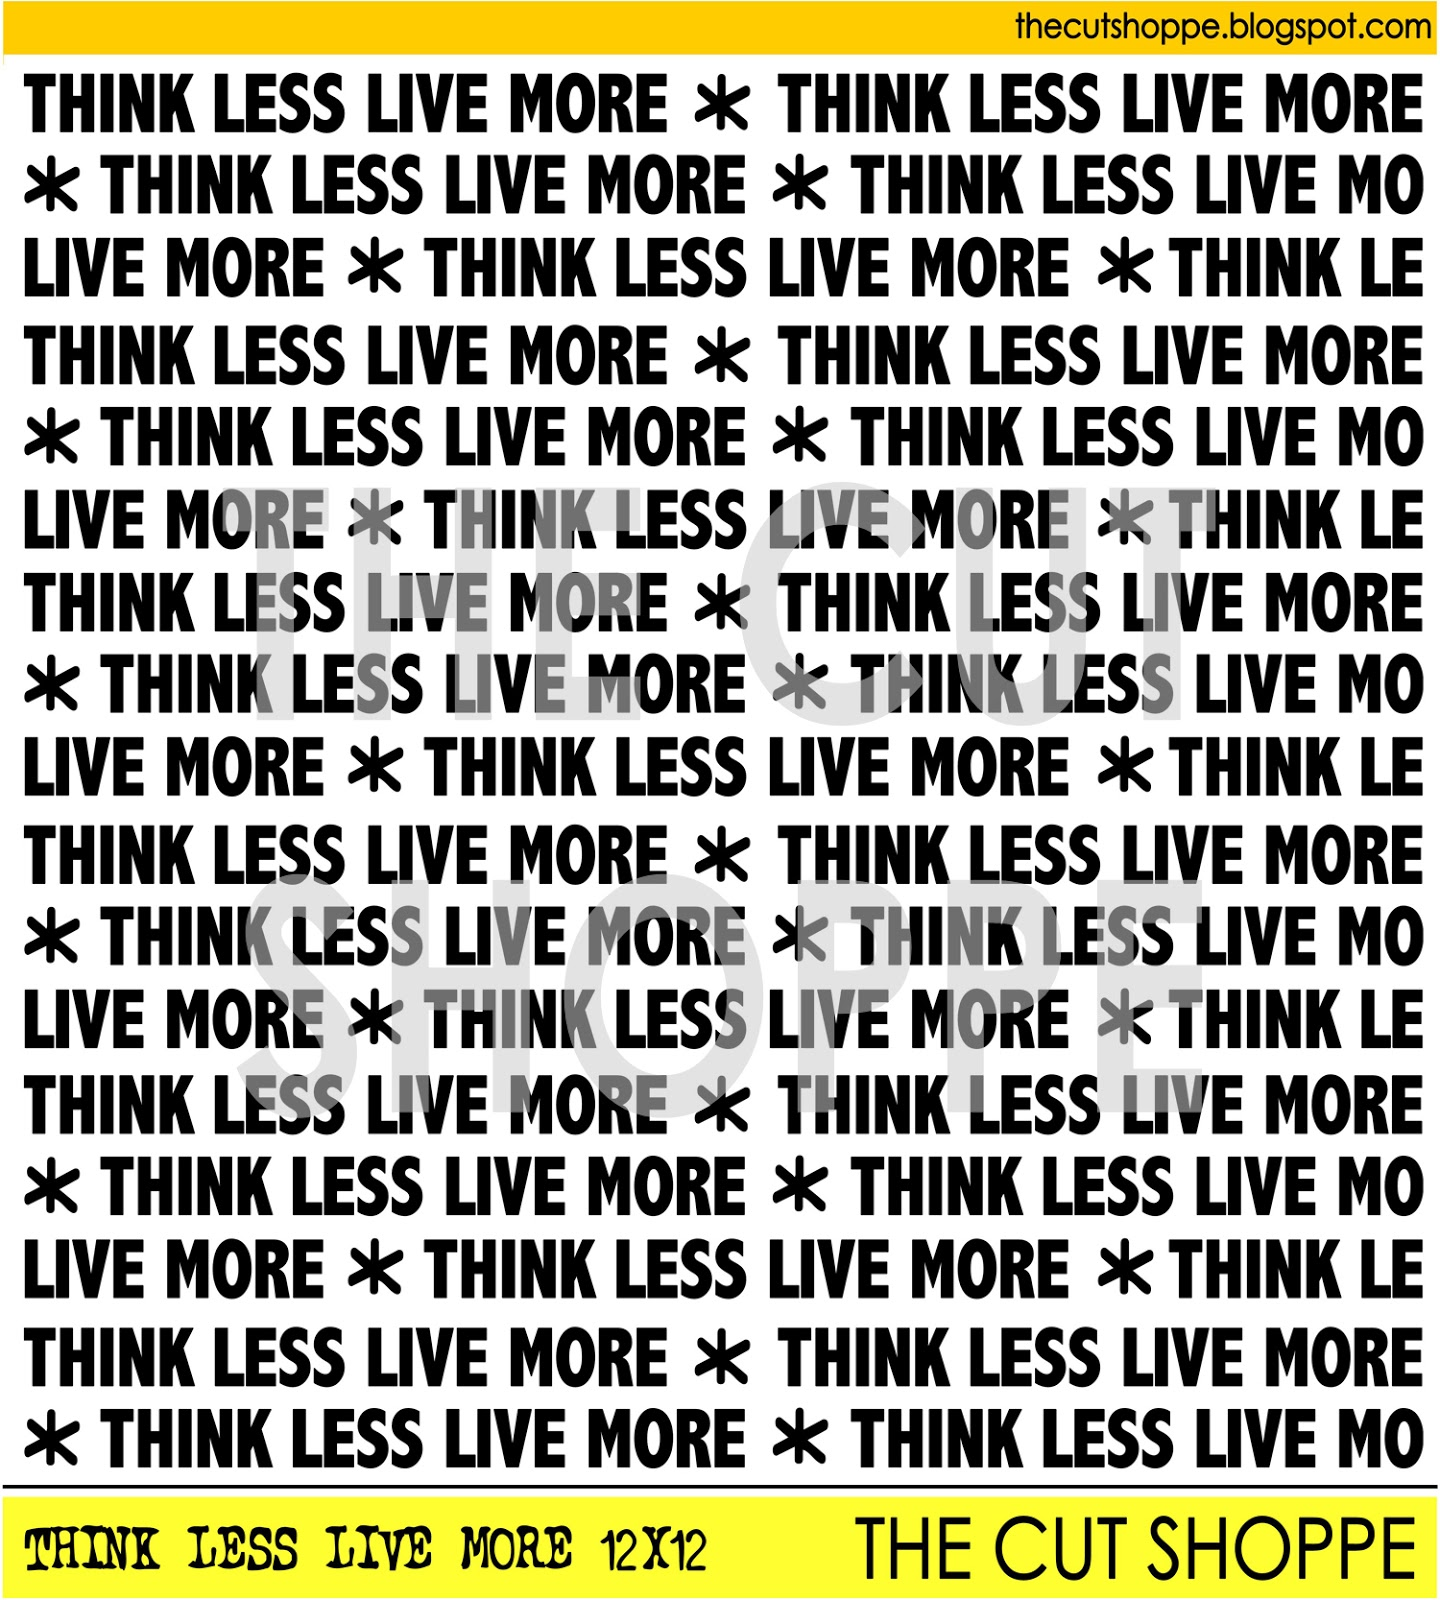 https://www.etsy.com/listing/201037380/the-think-less-live-more-cut-file-is-a?ref=shop_home_active_7